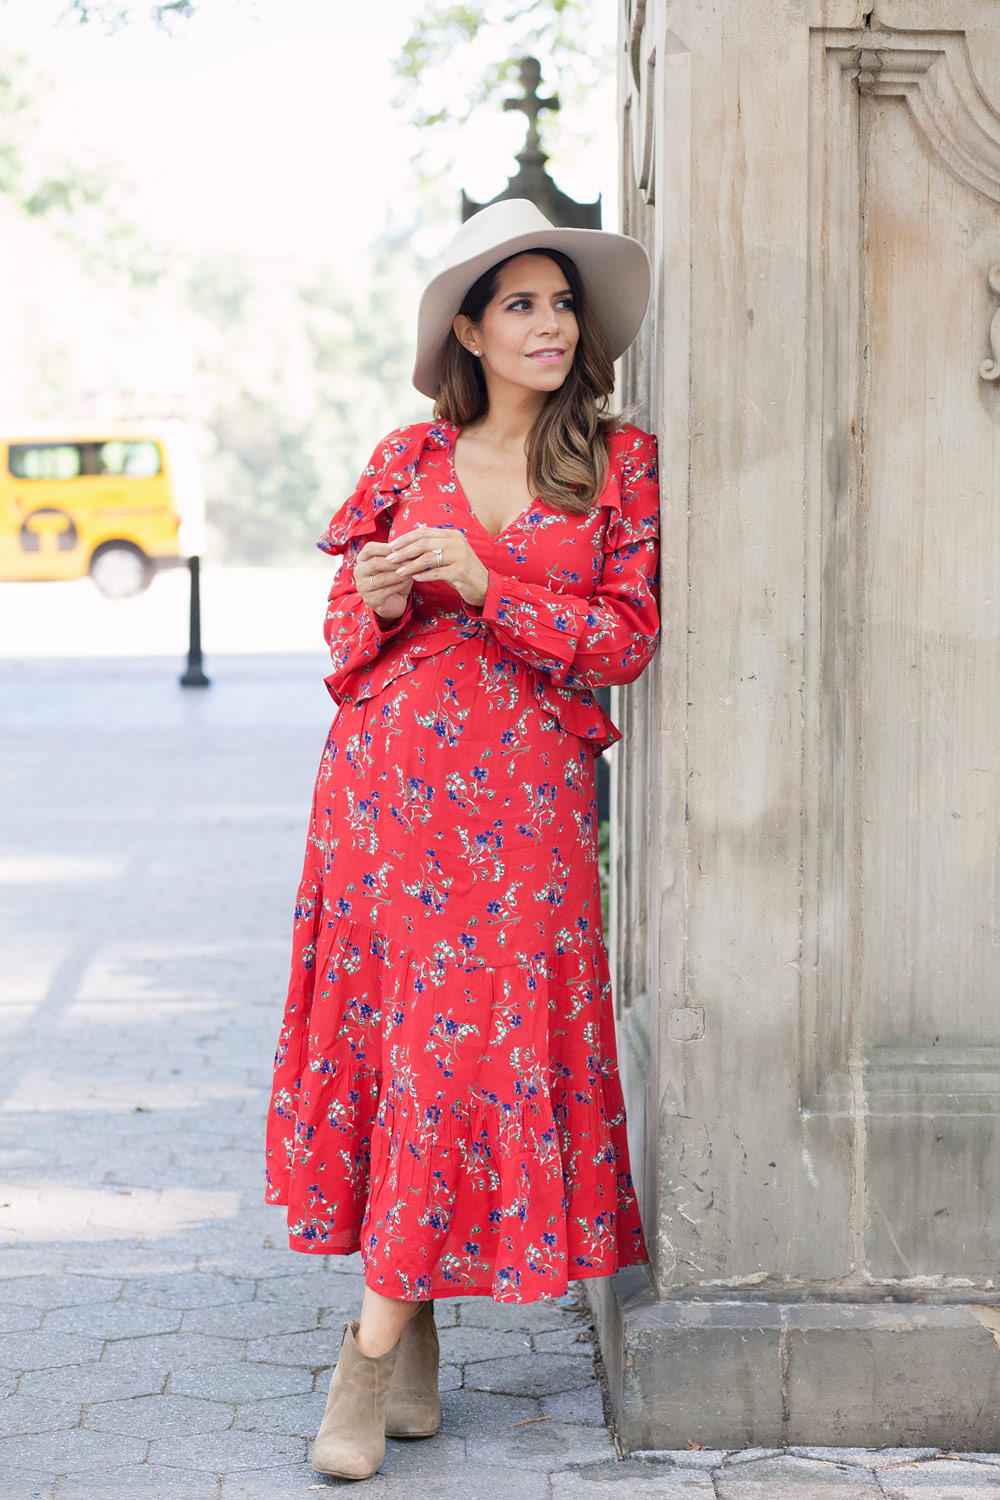 Balancing family and friends busy women Central park red floral dress casual outfit french bulldog fashion blogger lifestyle blogger new york city NYC blogger11